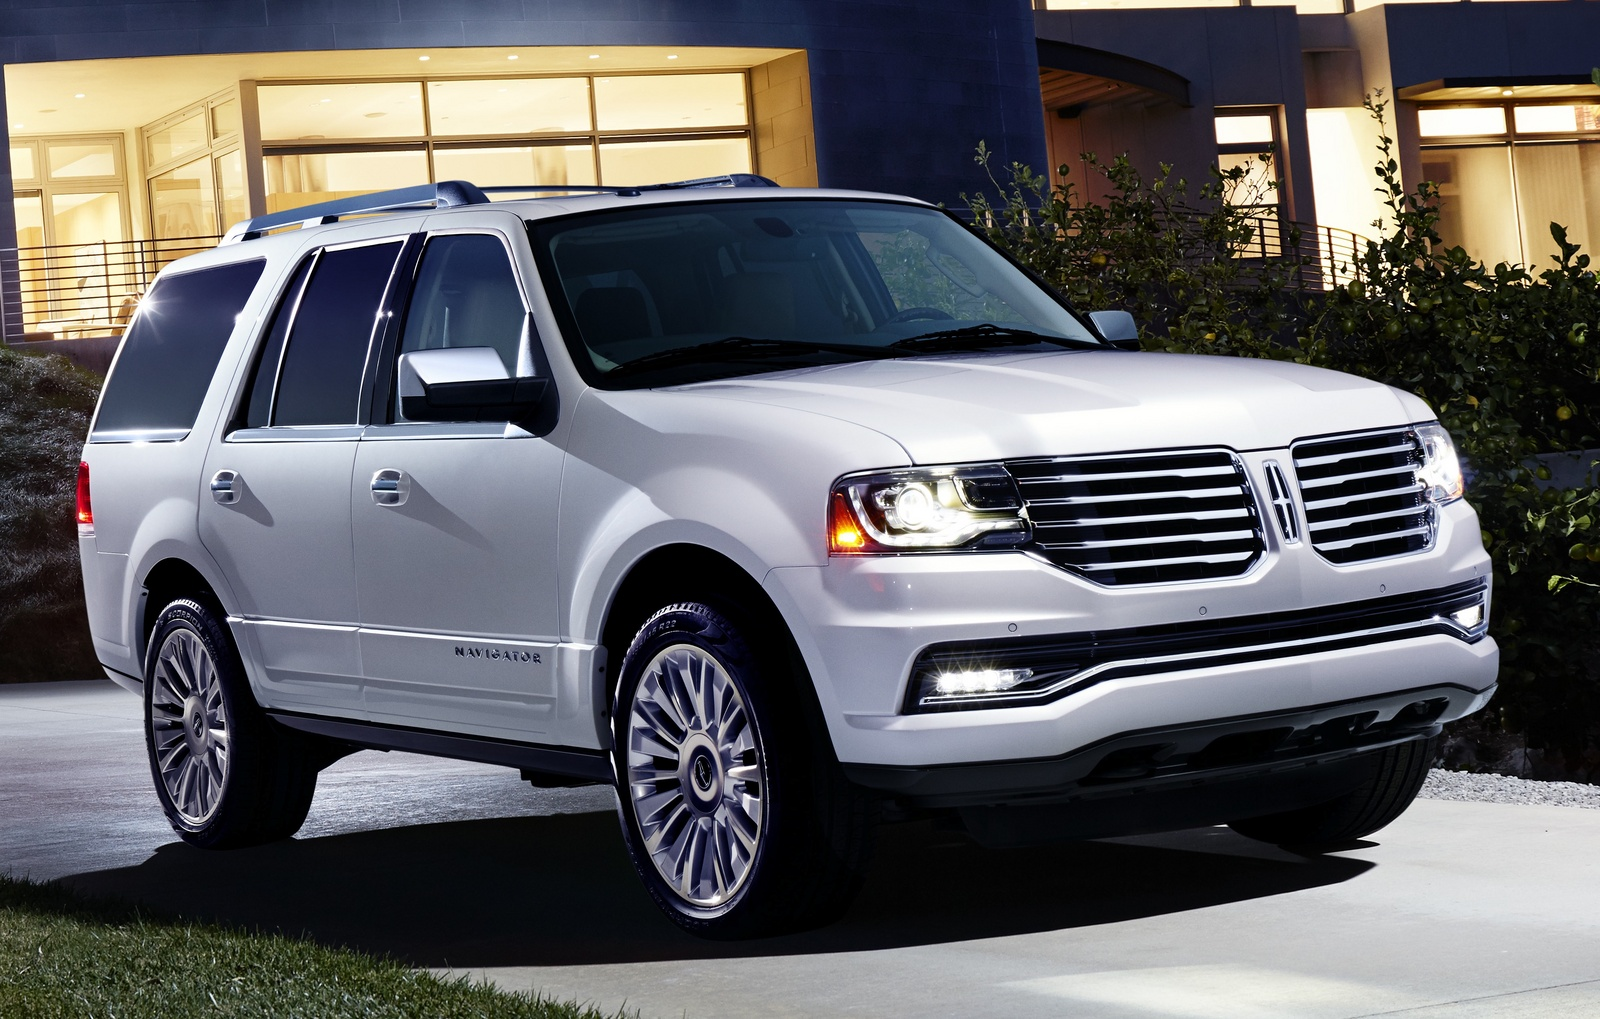 2015 Lincoln Navigator - Review - CarGurus